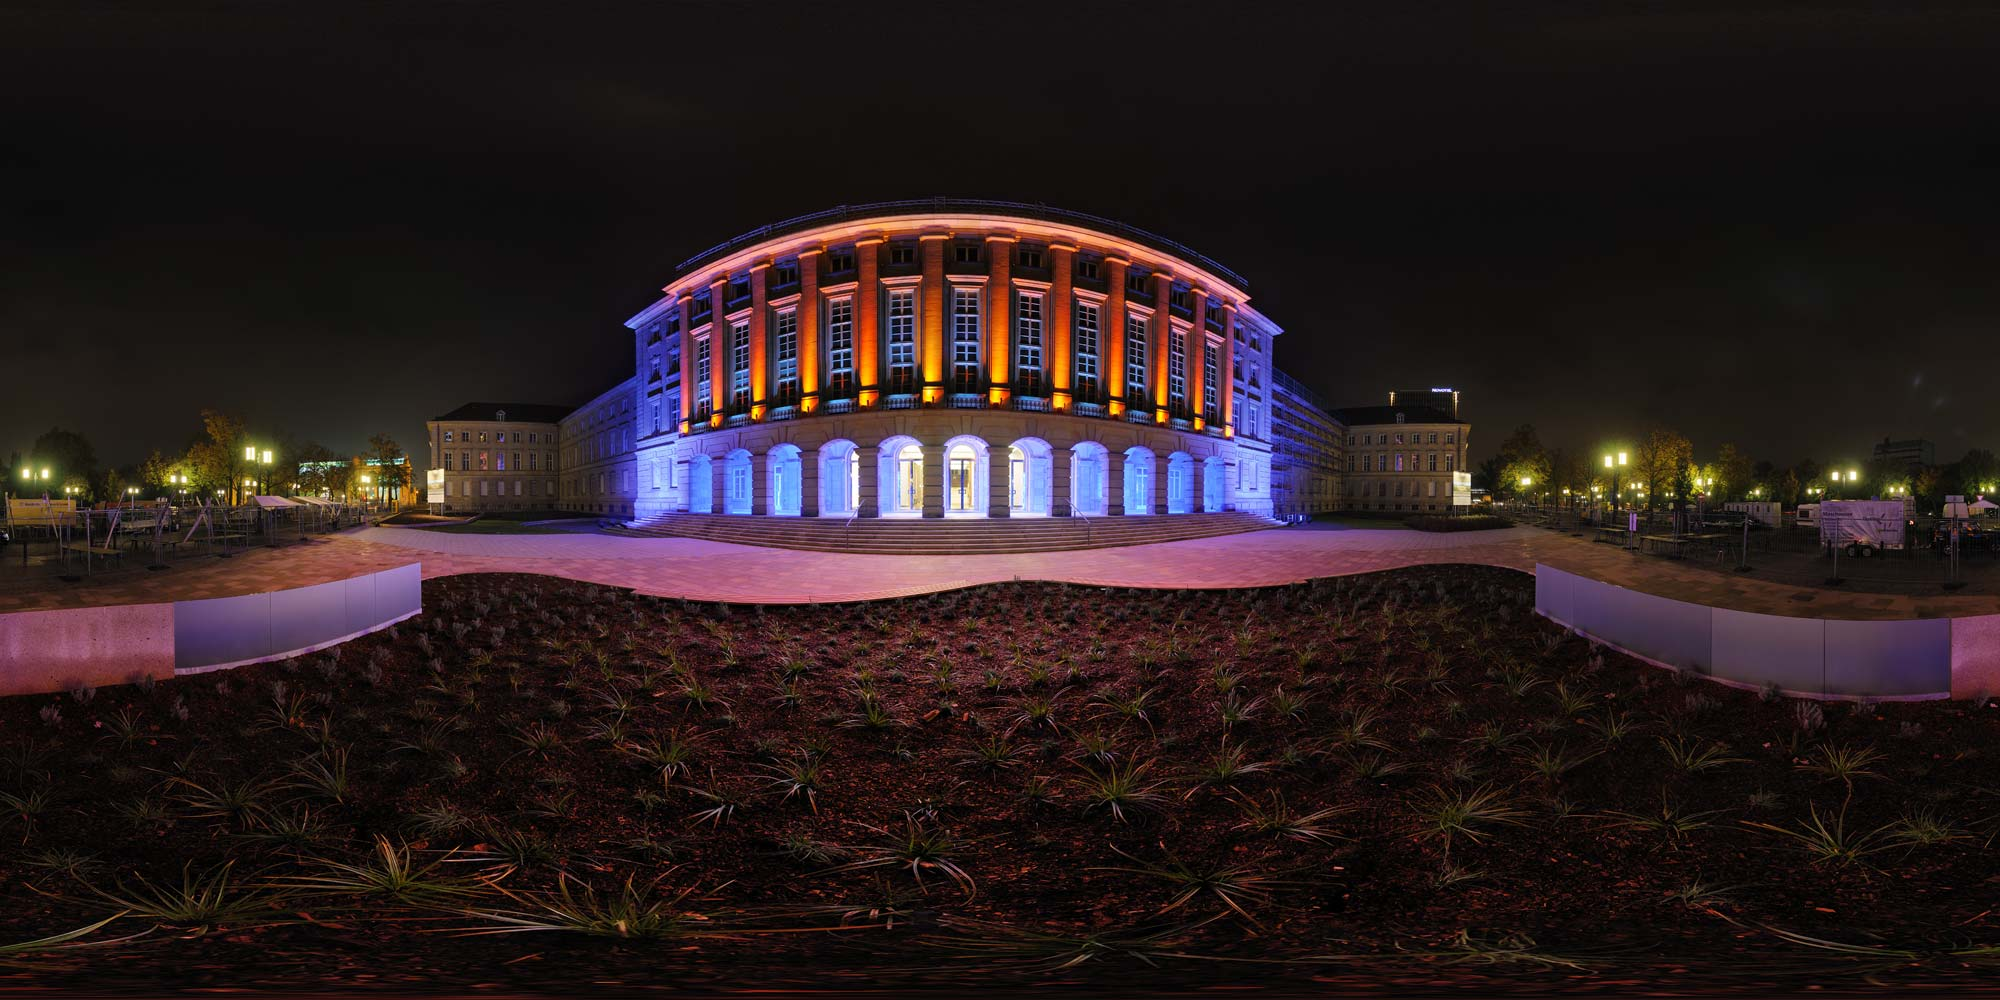 Panorama Berlin Festival of Lights - FOL 2009 Ernst-Reuter-Haus